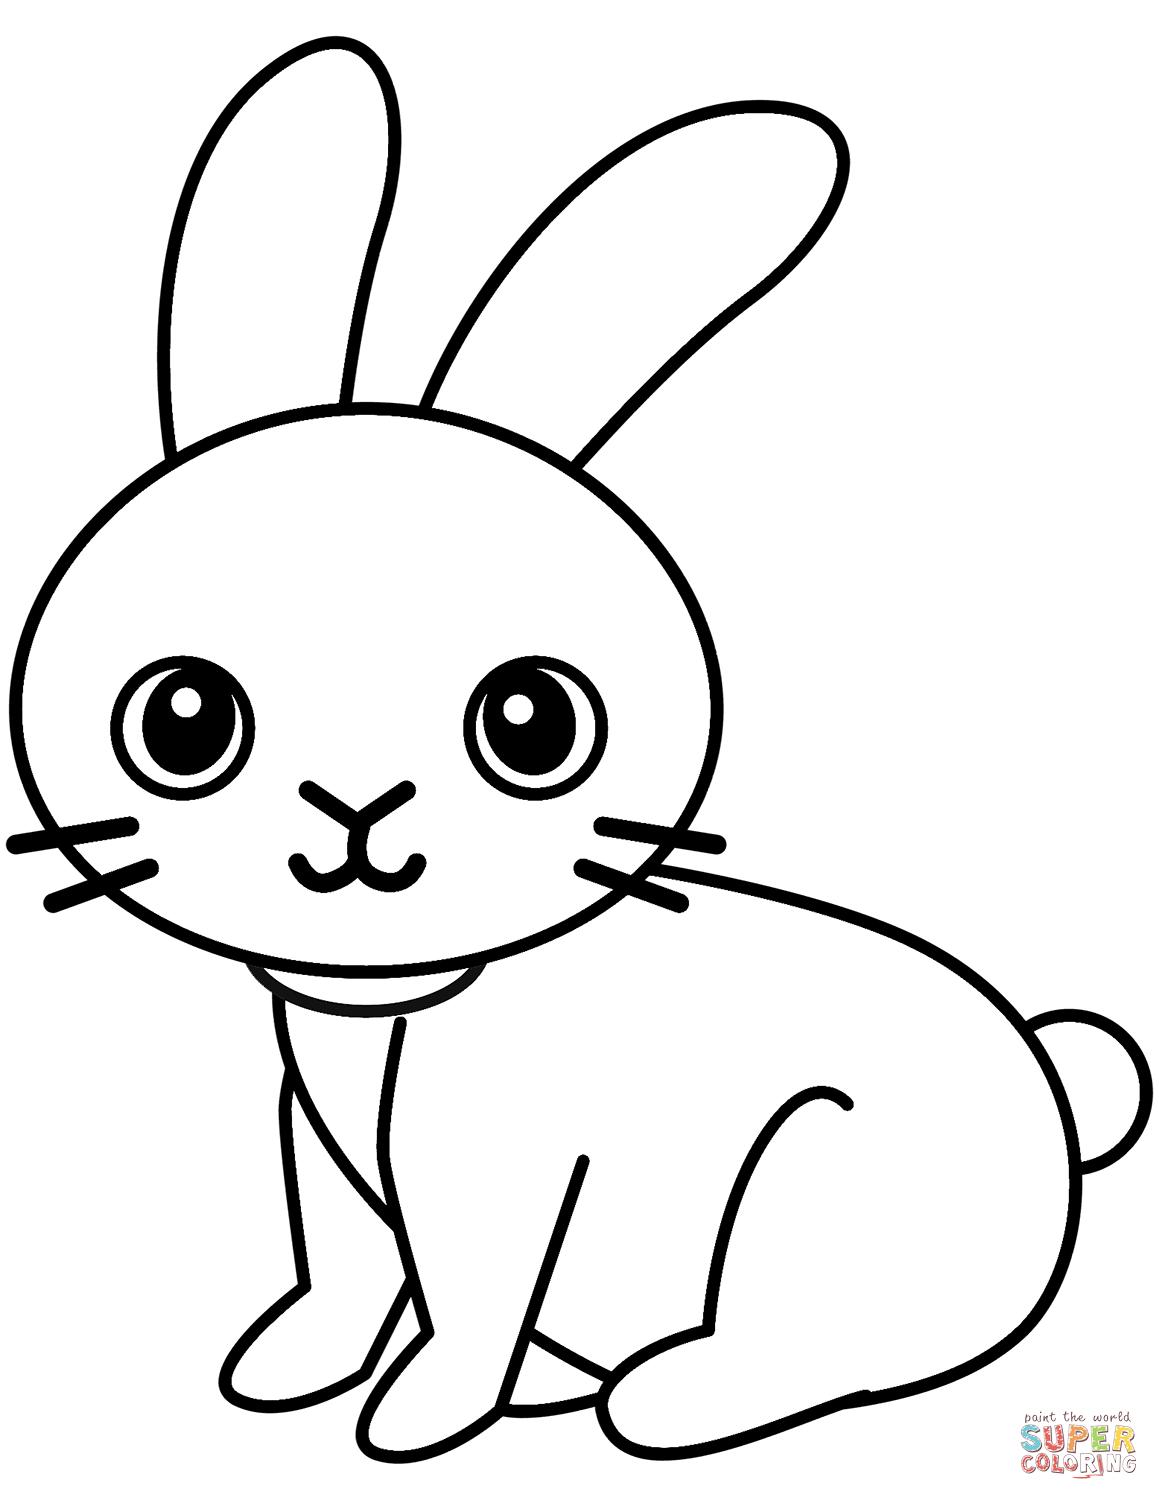 coloring pictures rabbit rabbit to download rabbit kids coloring pages pictures coloring rabbit